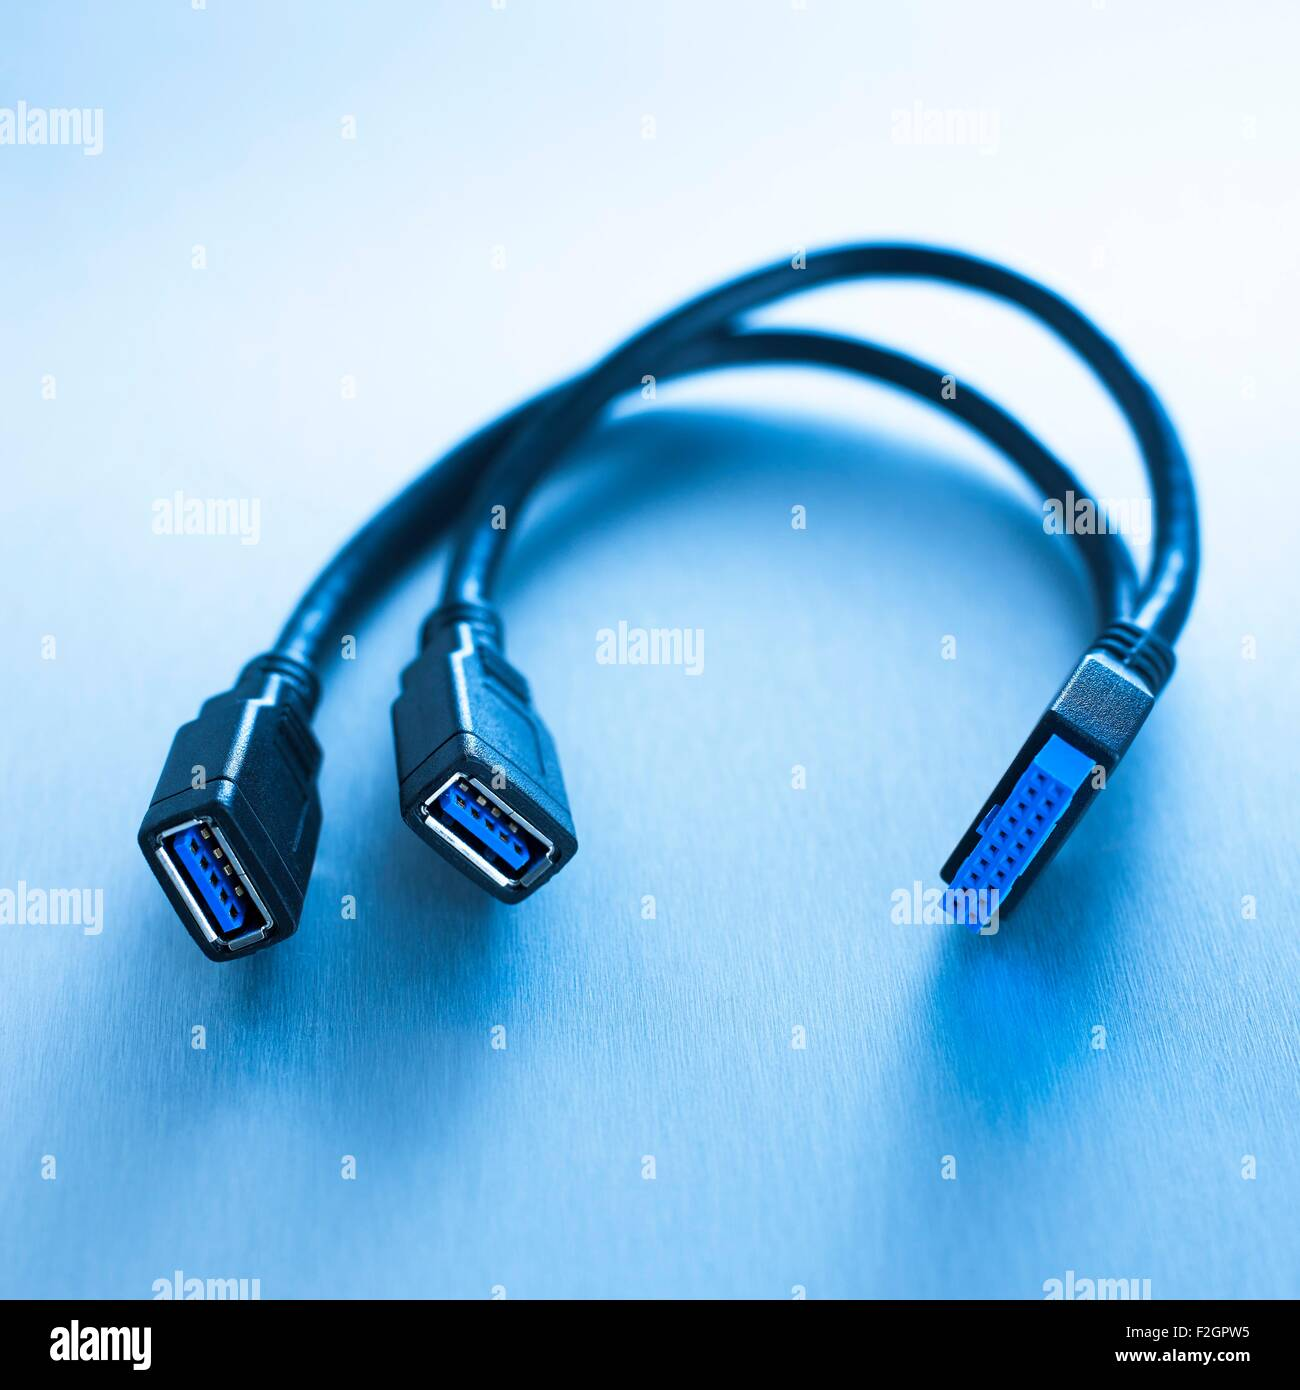 Firewire Stock Photos & Firewire Stock Images - Page 2 - Alamy